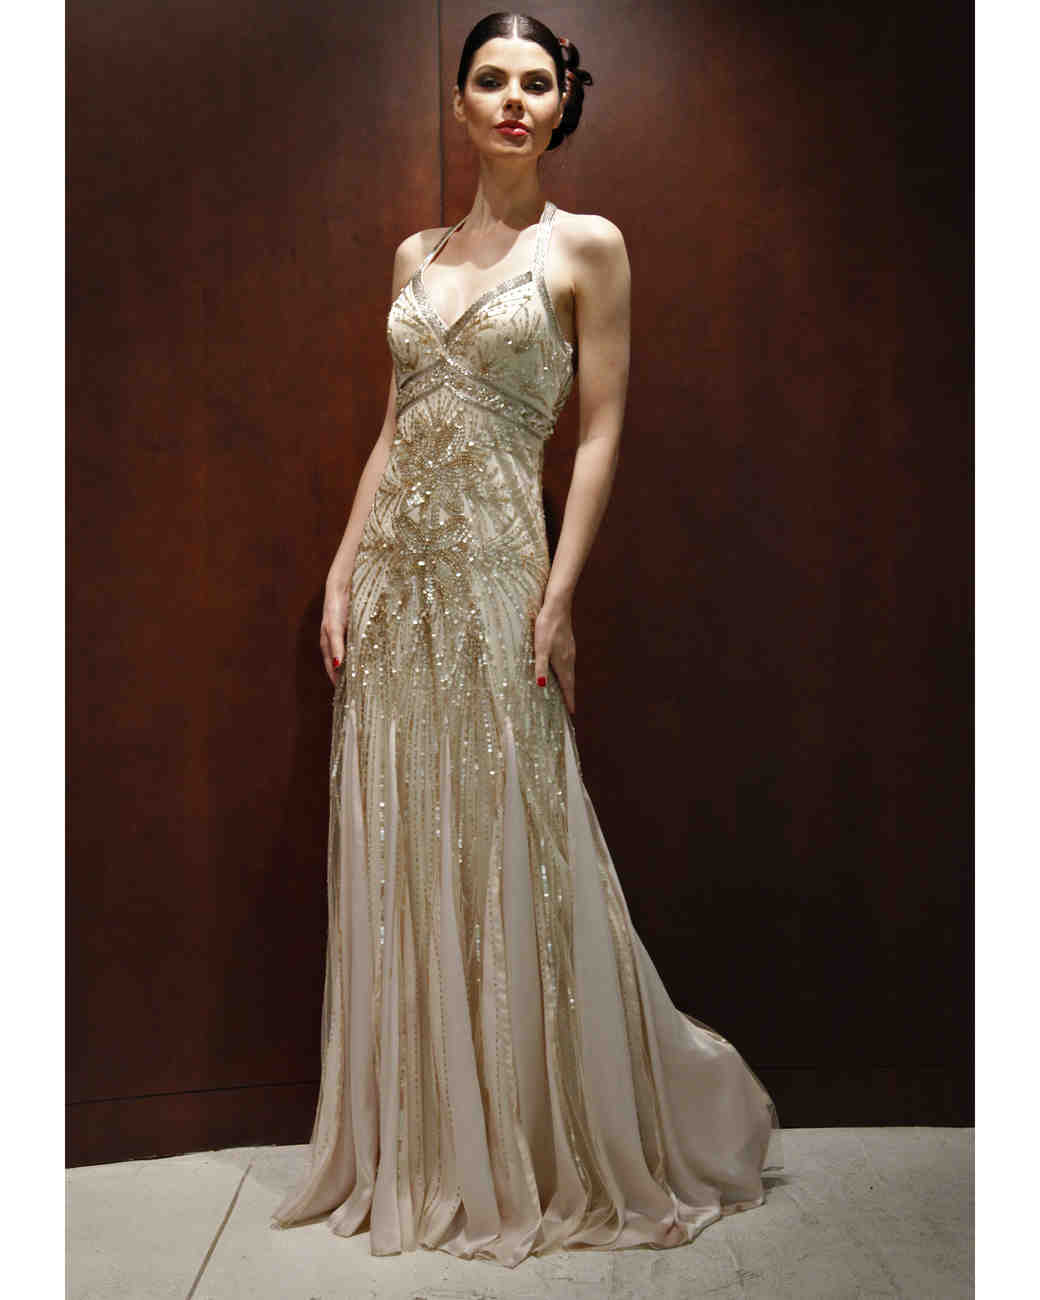 Pics Of Vintage Wedding Dresses: Gold Wedding Dresses, Fall 2012 Bridal Fashion Week